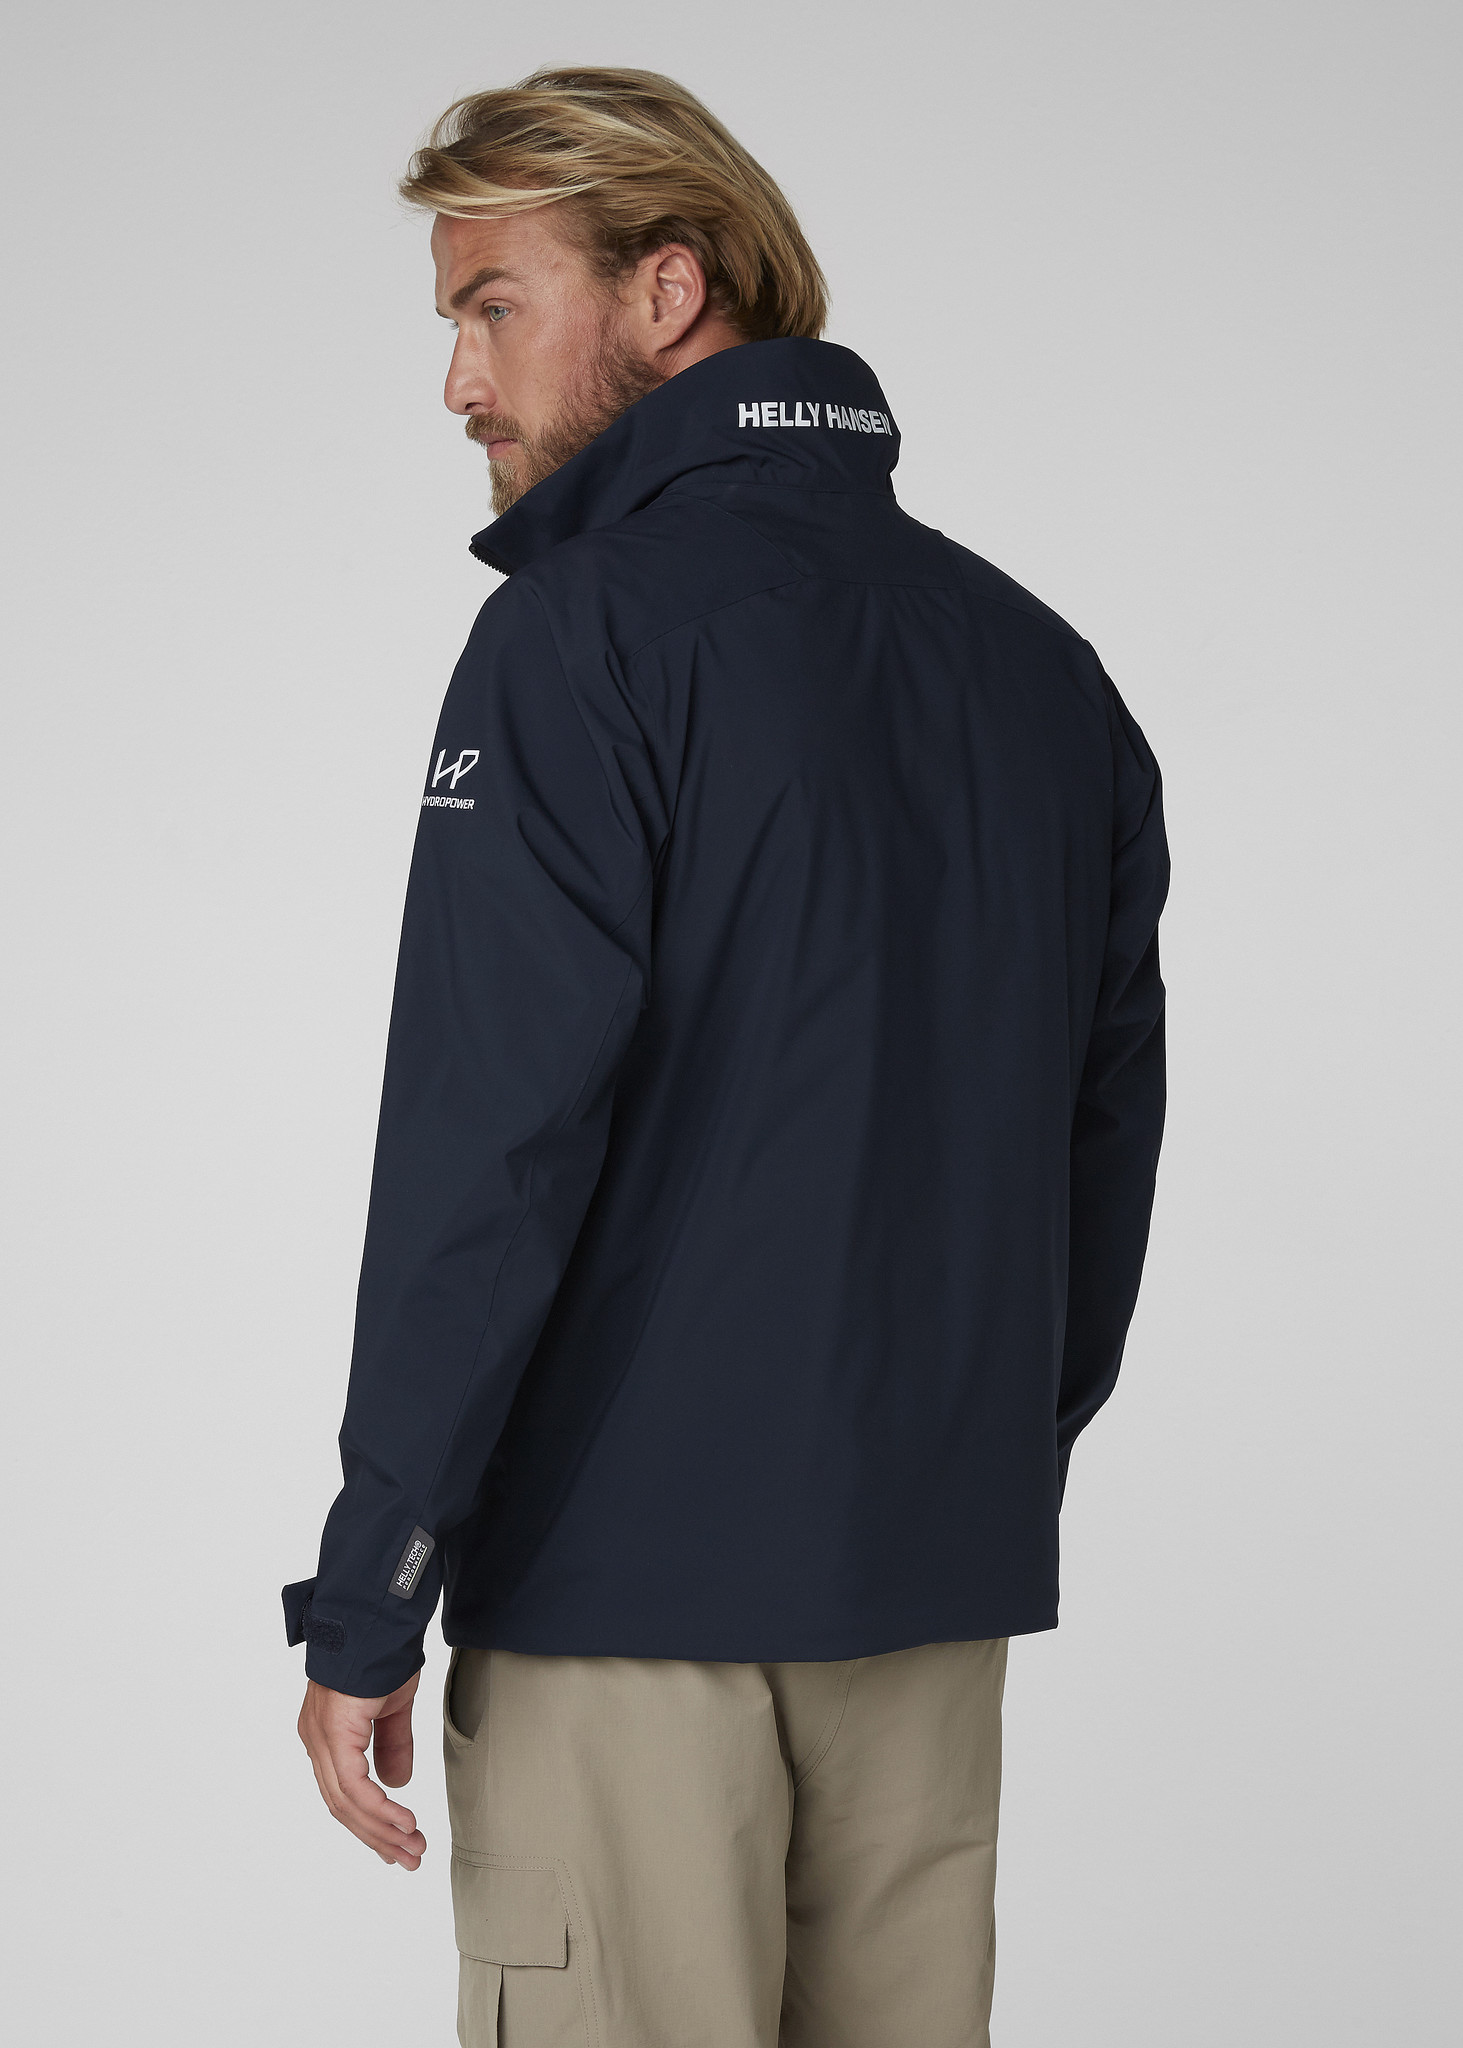 Helly Hansen HP Racing Midlayer - Navy